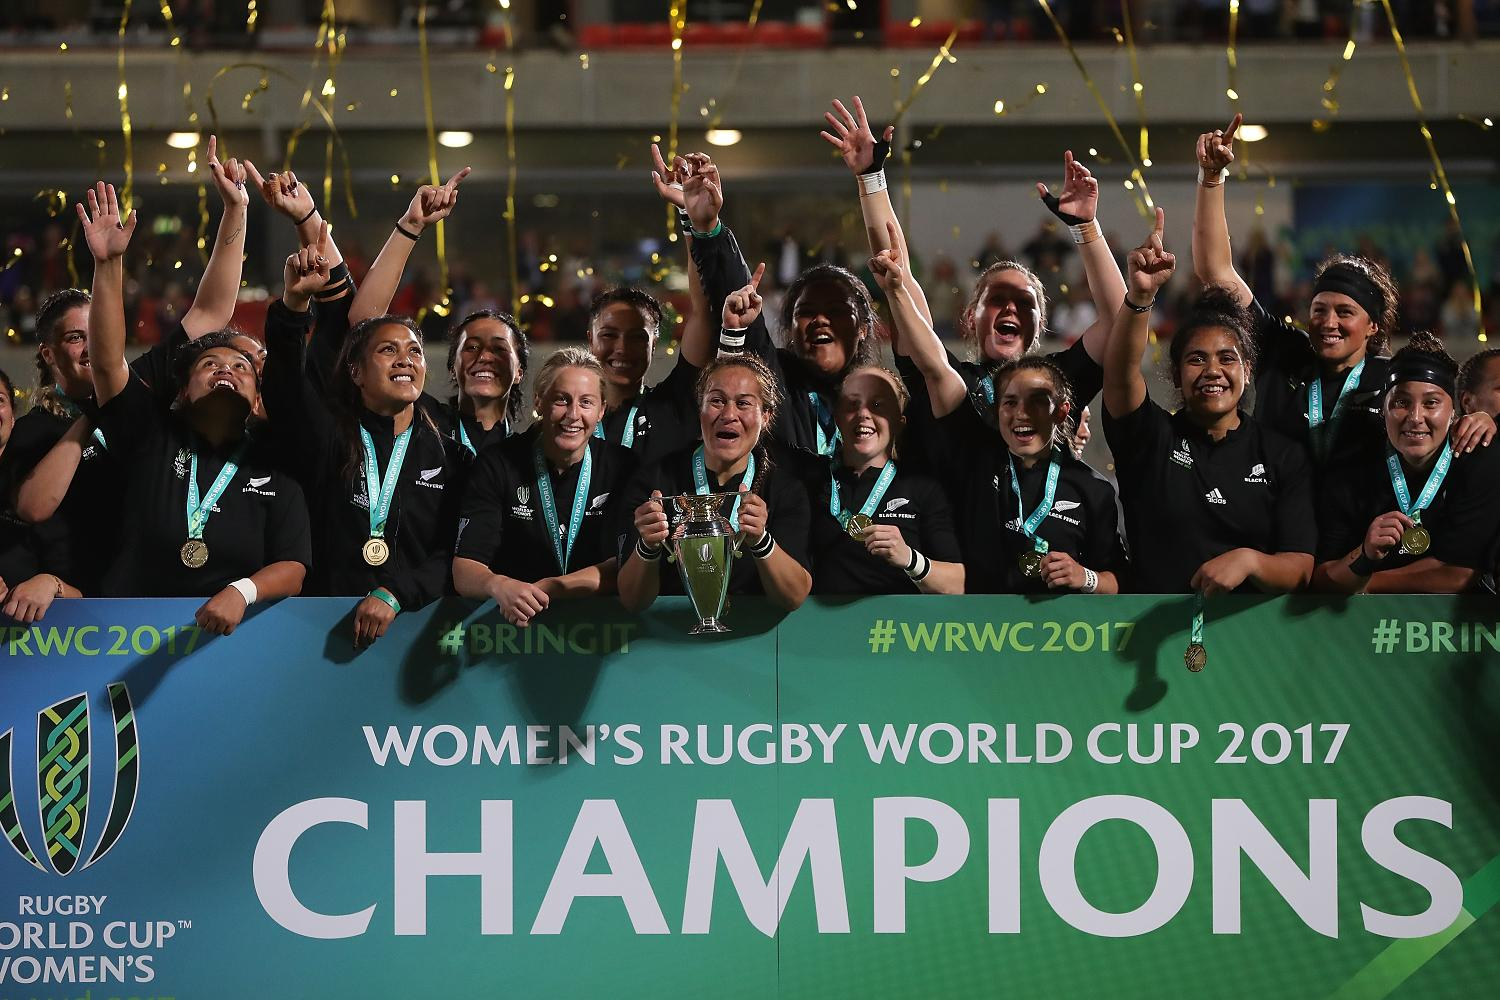 WRWC 2017: Final - England v New Zealand trophy lift